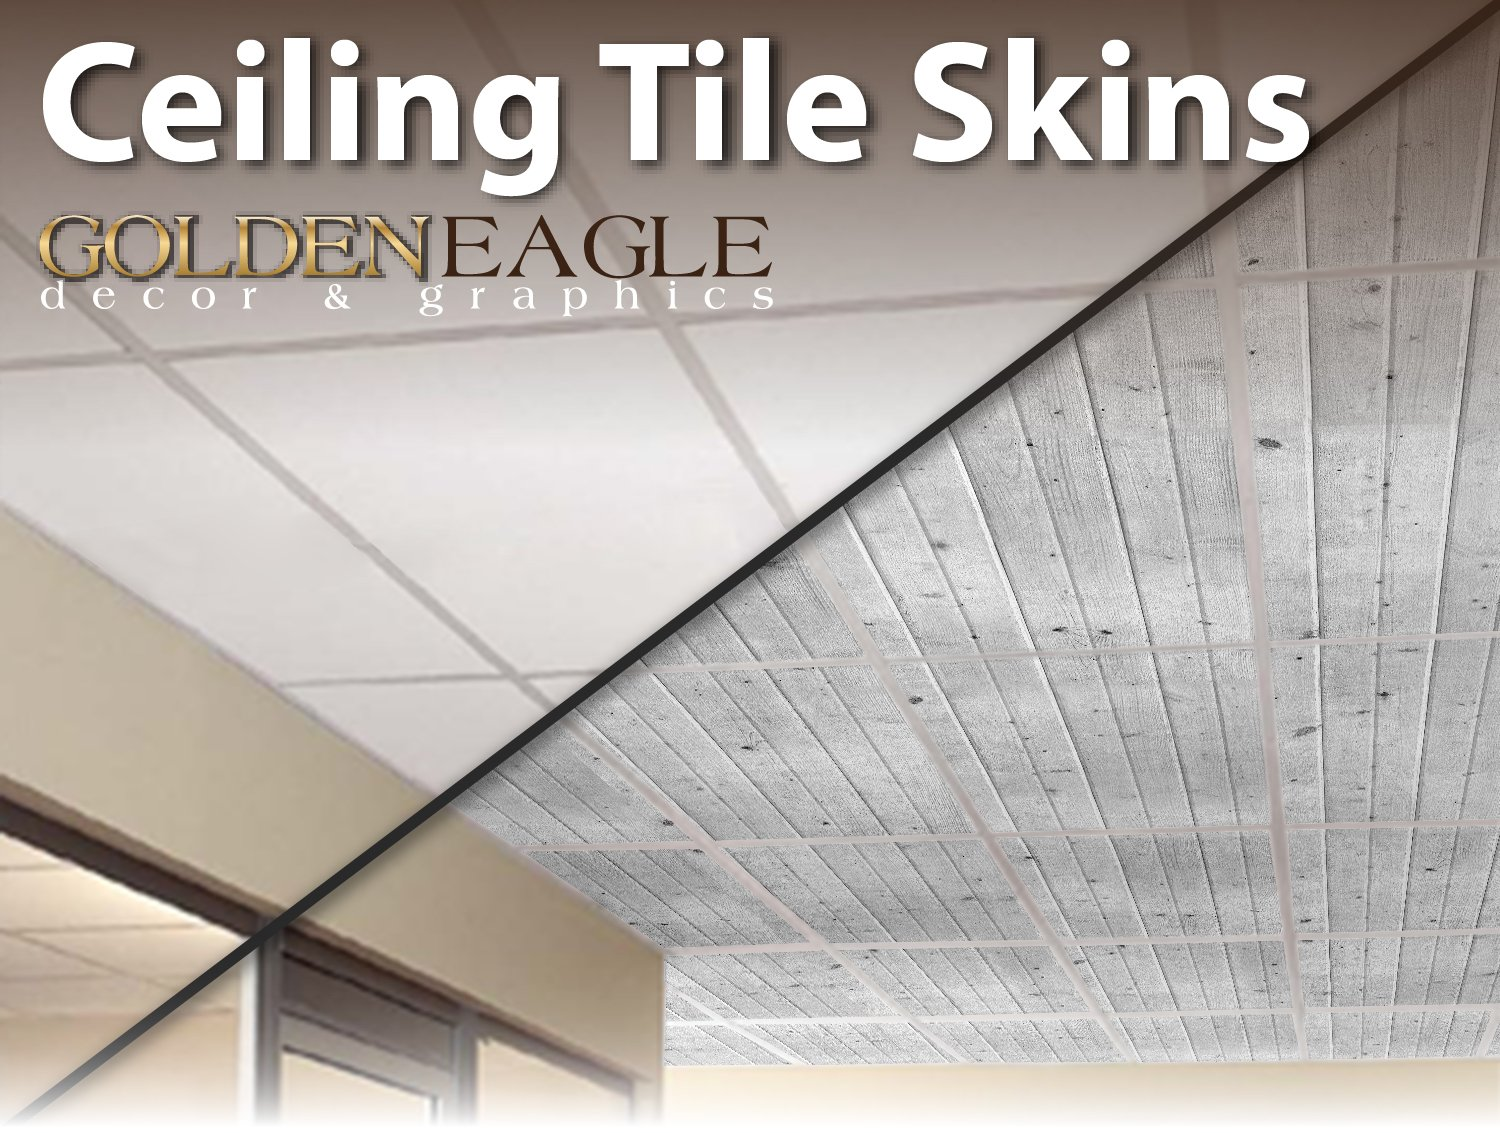 Amazon 2x4 glue up ceiling tile skin white washed knotty amazon 2x4 glue up ceiling tile skin white washed knotty pine home kitchen dailygadgetfo Images